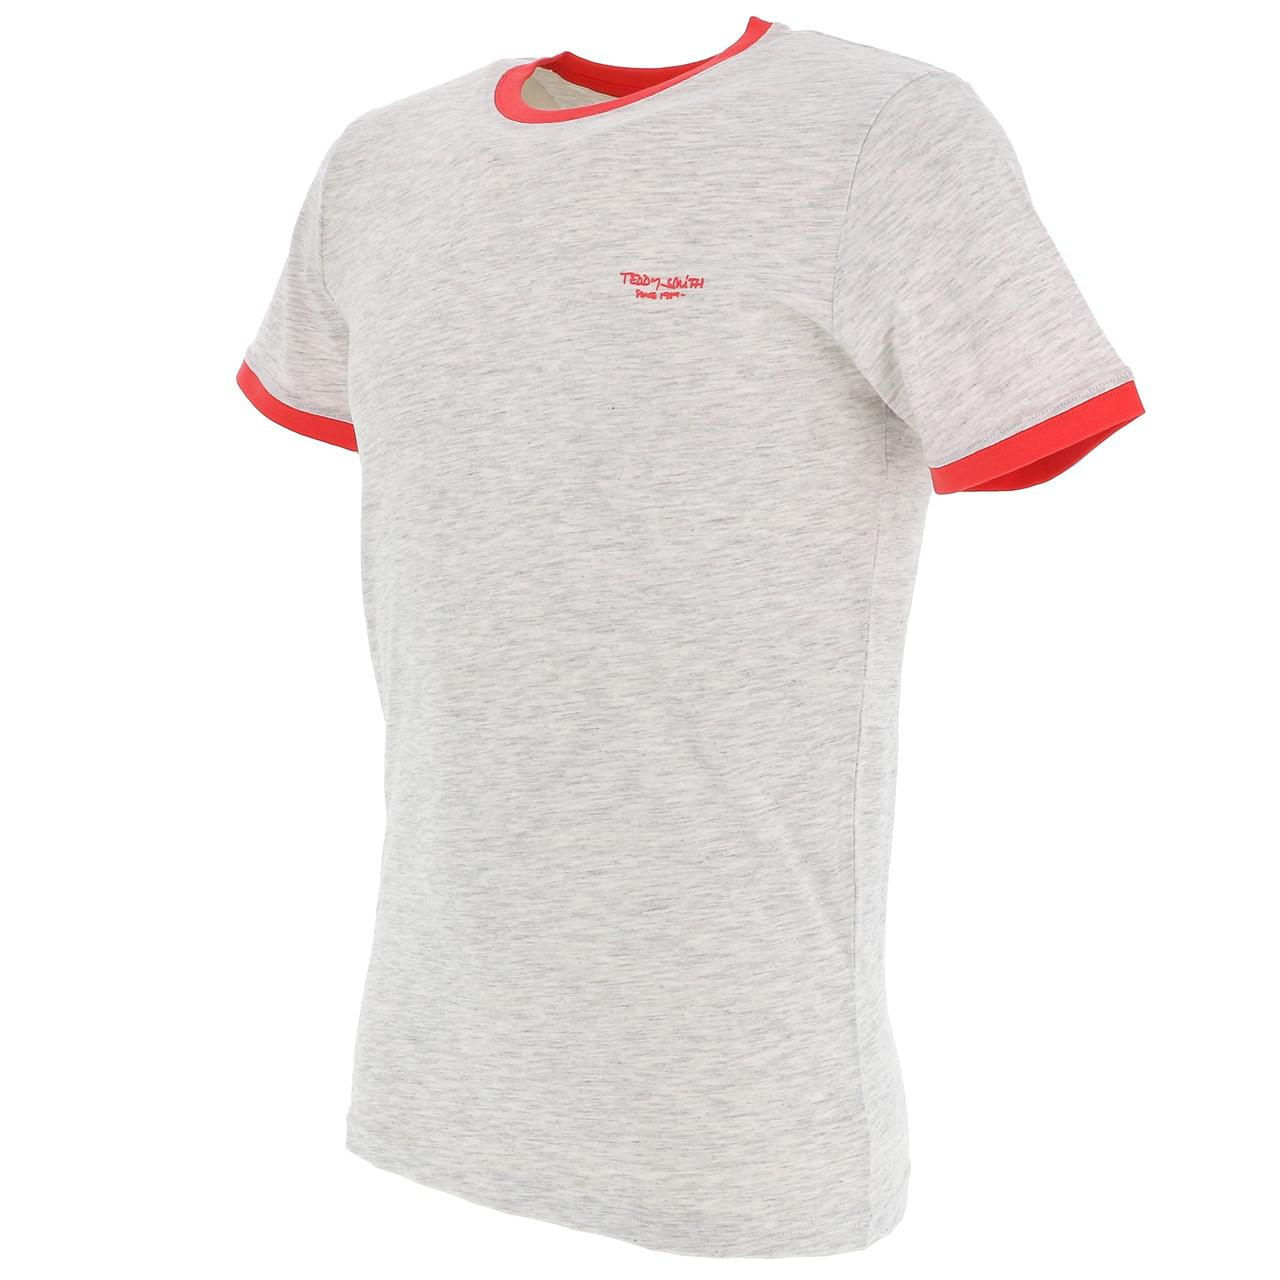 Short-Sleeve-T-Shirt-Teddy-Smith-the-Tee-Wht-Mel-Coral-White-18160-Does-Not thumbnail 4